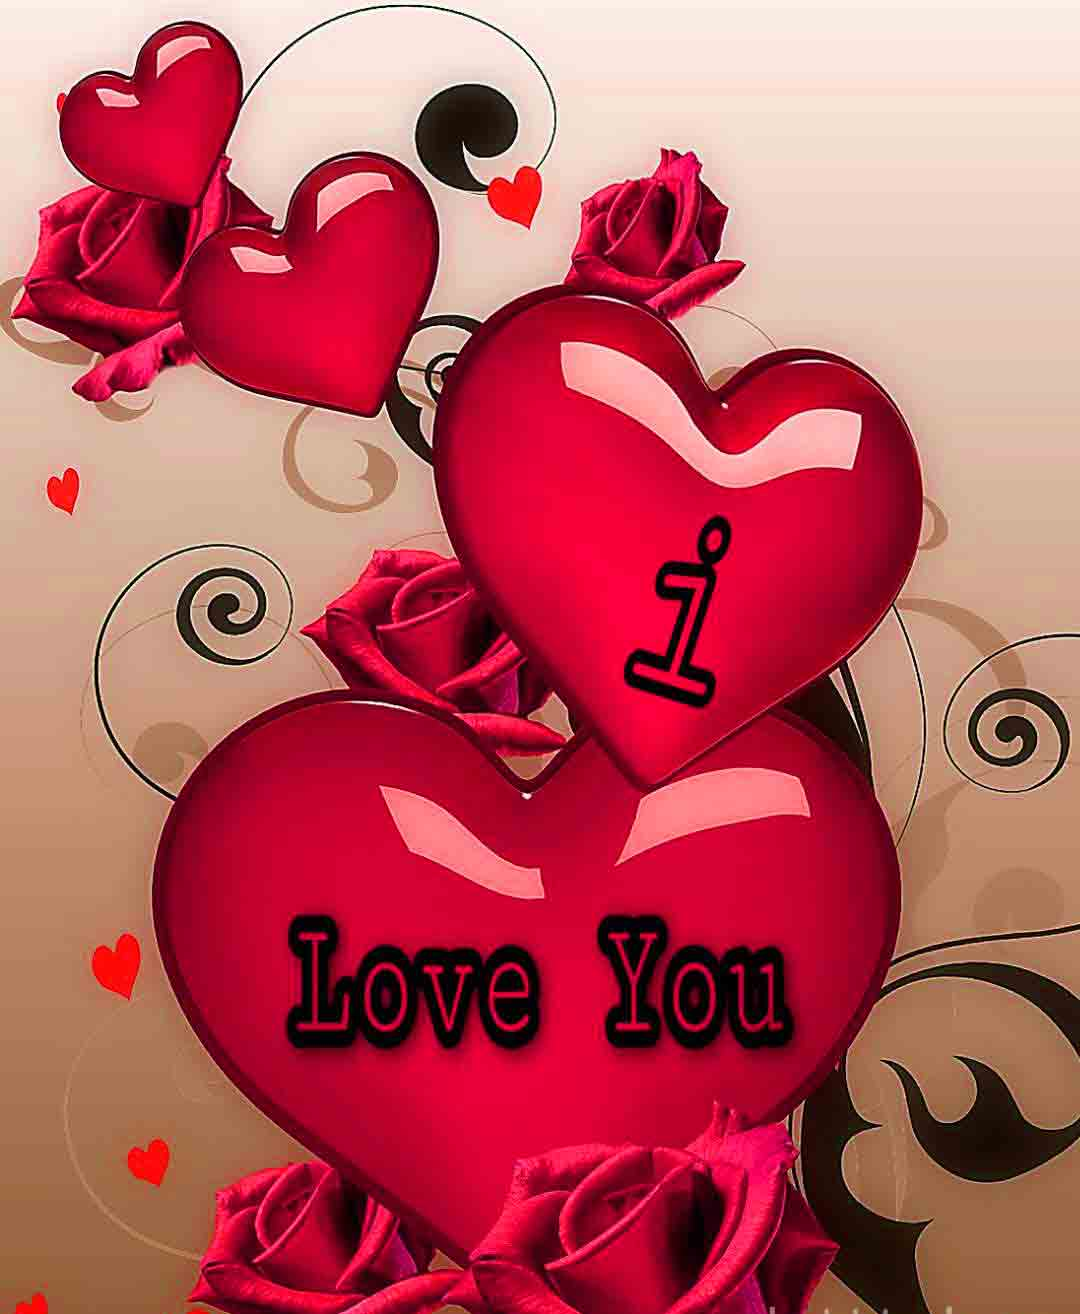 Latest I Love You Whatsapp Dp Images photo for download